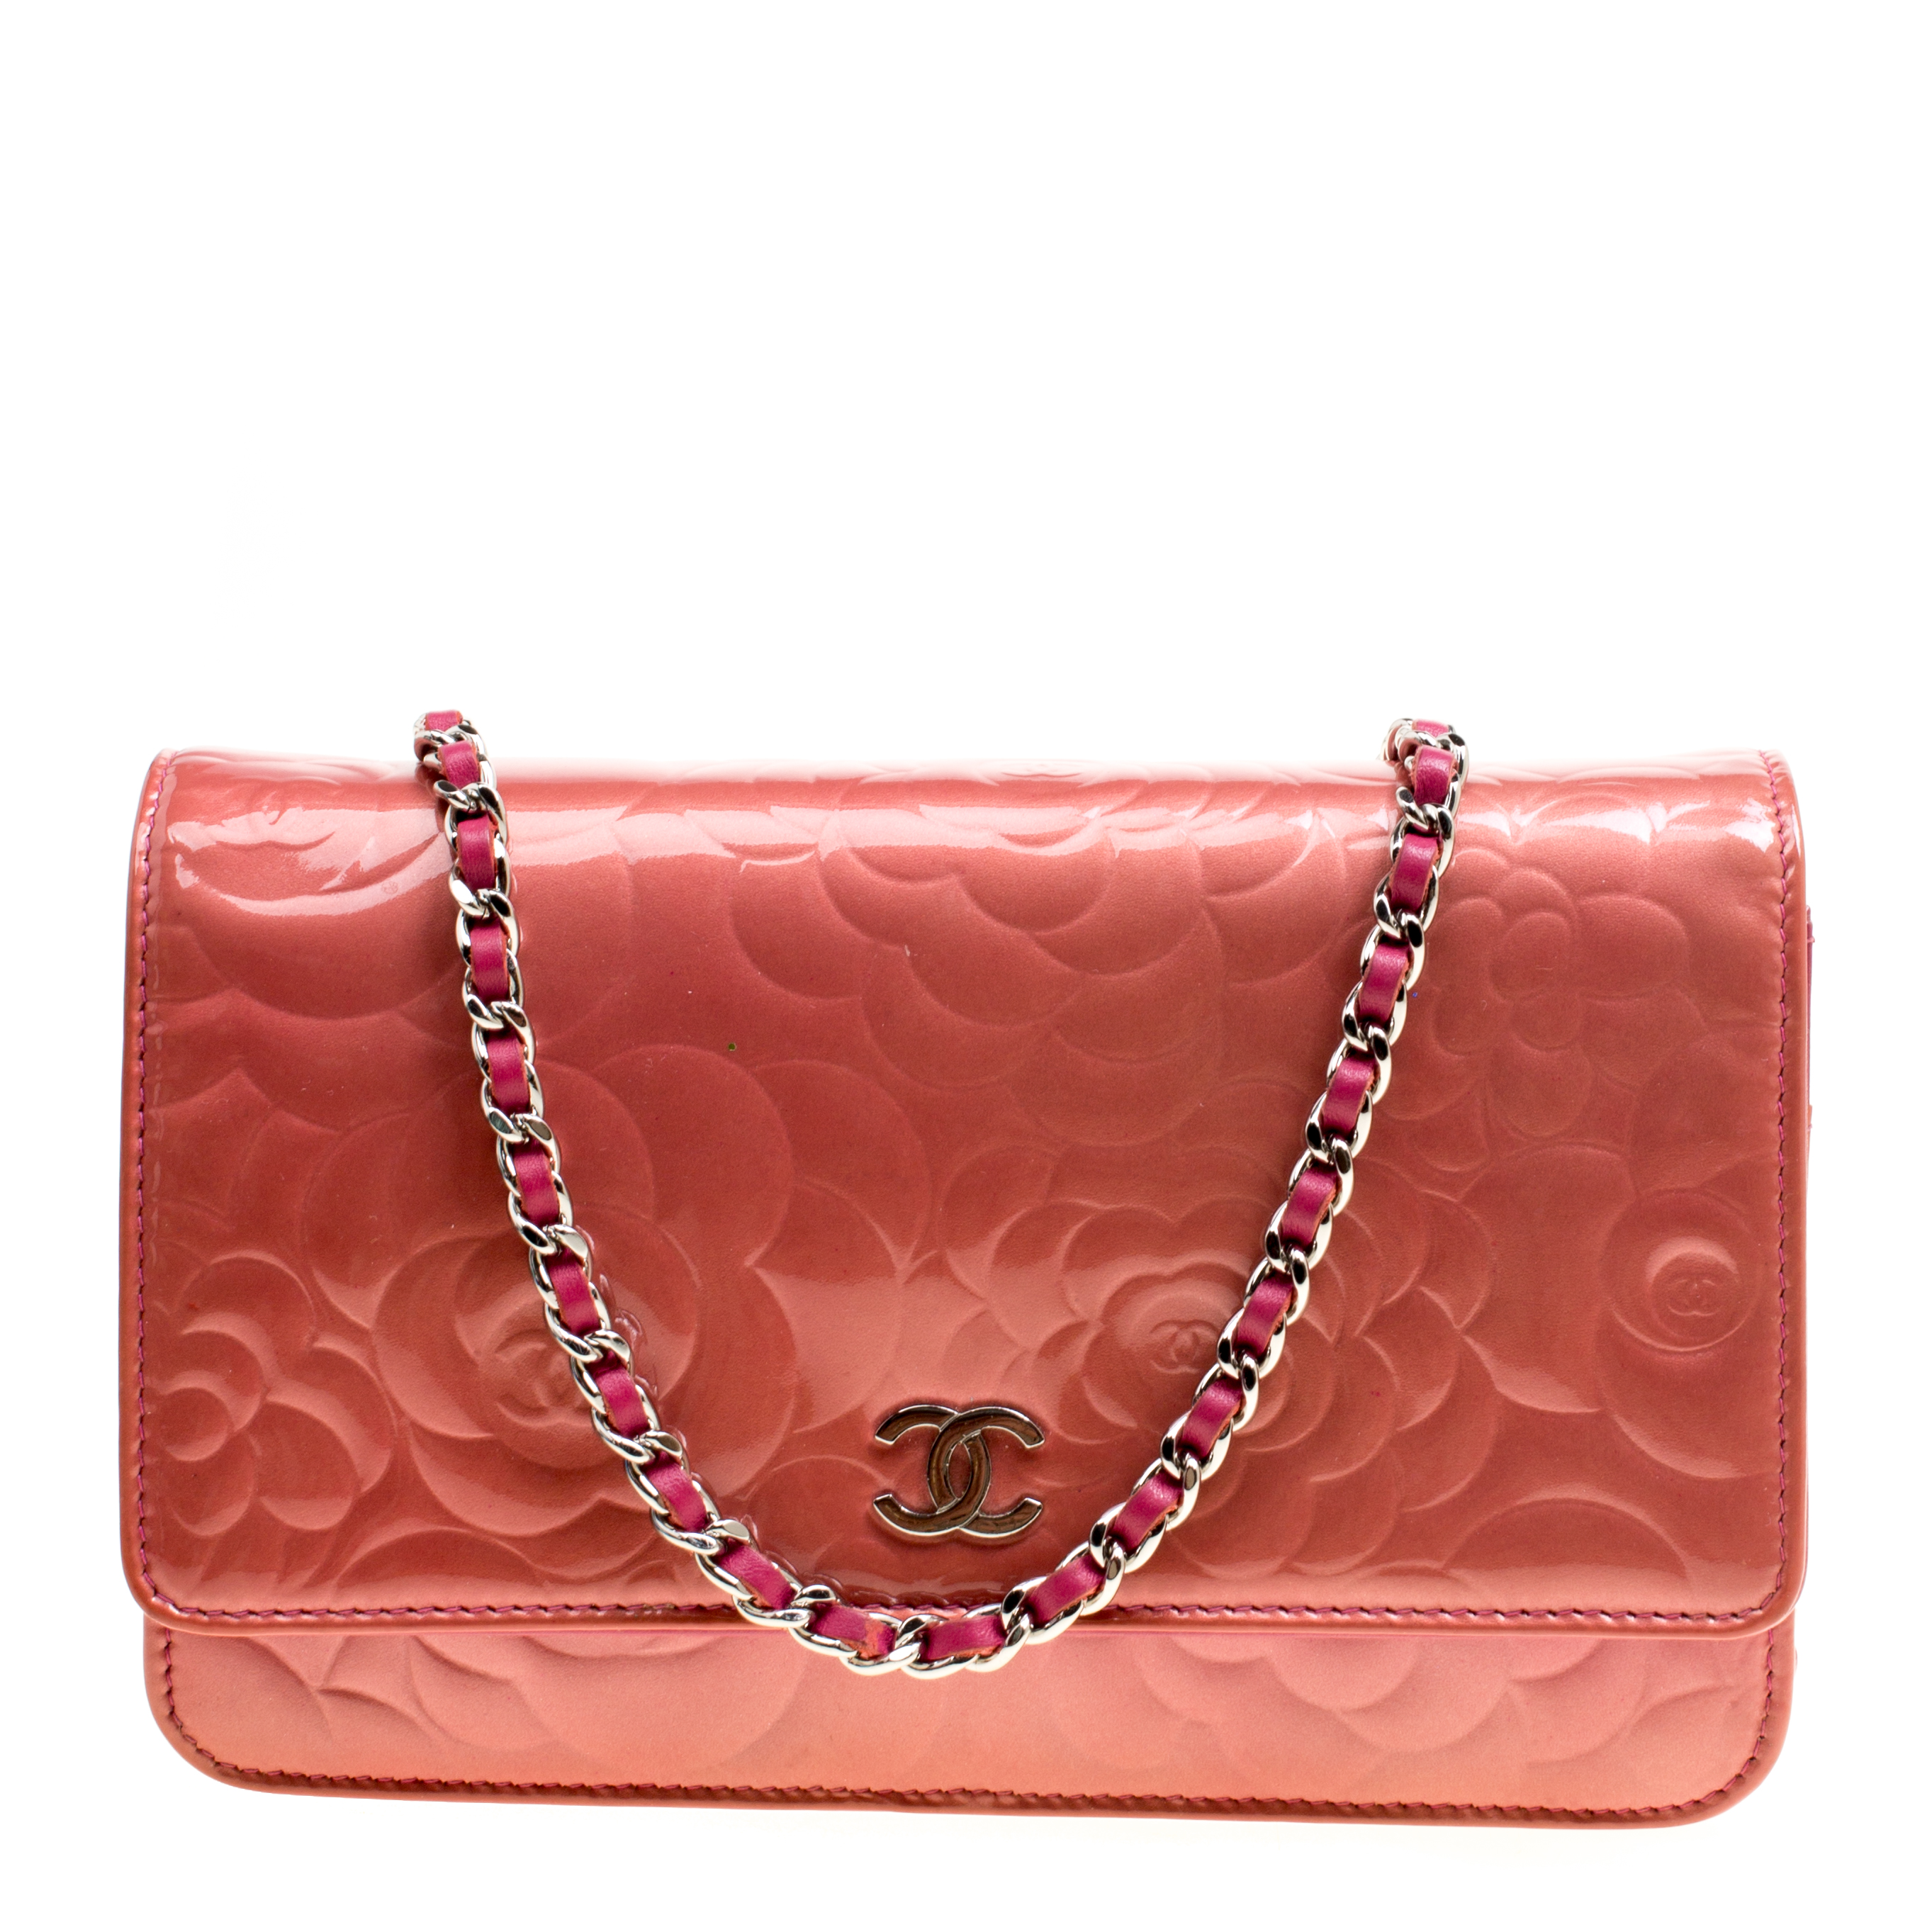 ... Chanel Rose Patent Leather Camellia Wallet on Chain. nextprev. prevnext 261131607f